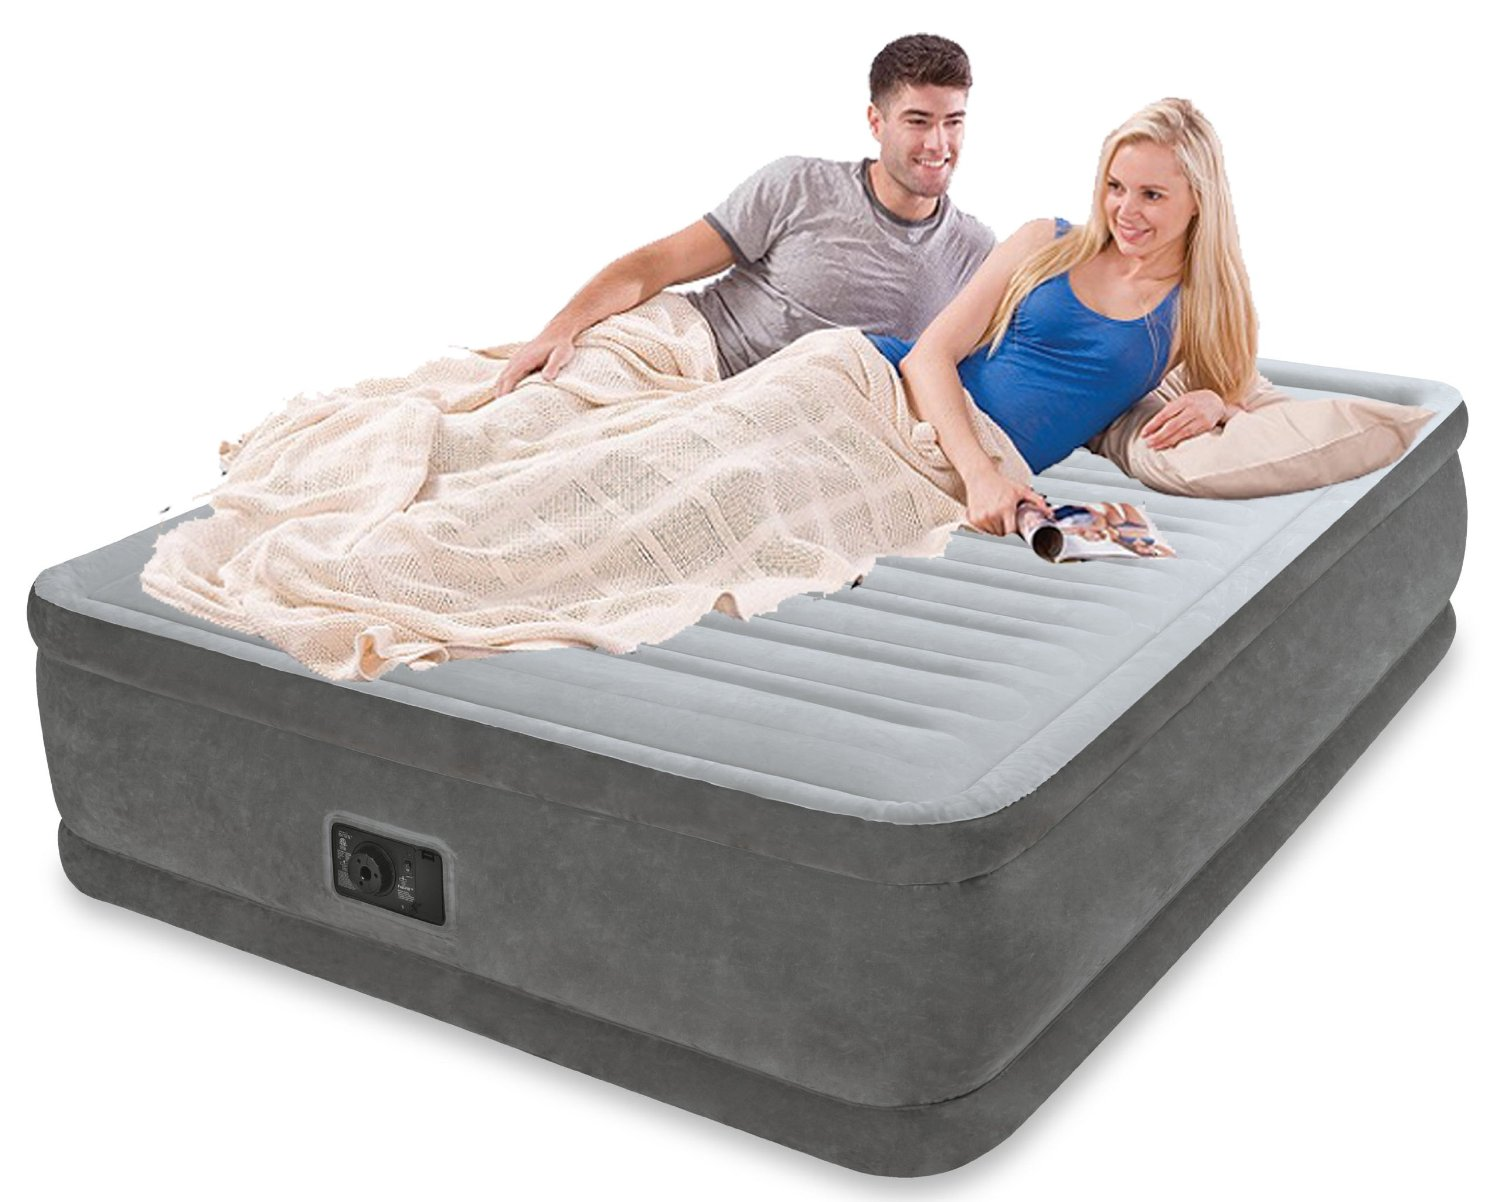 Image result for Intex 64414 Queen Air Bed